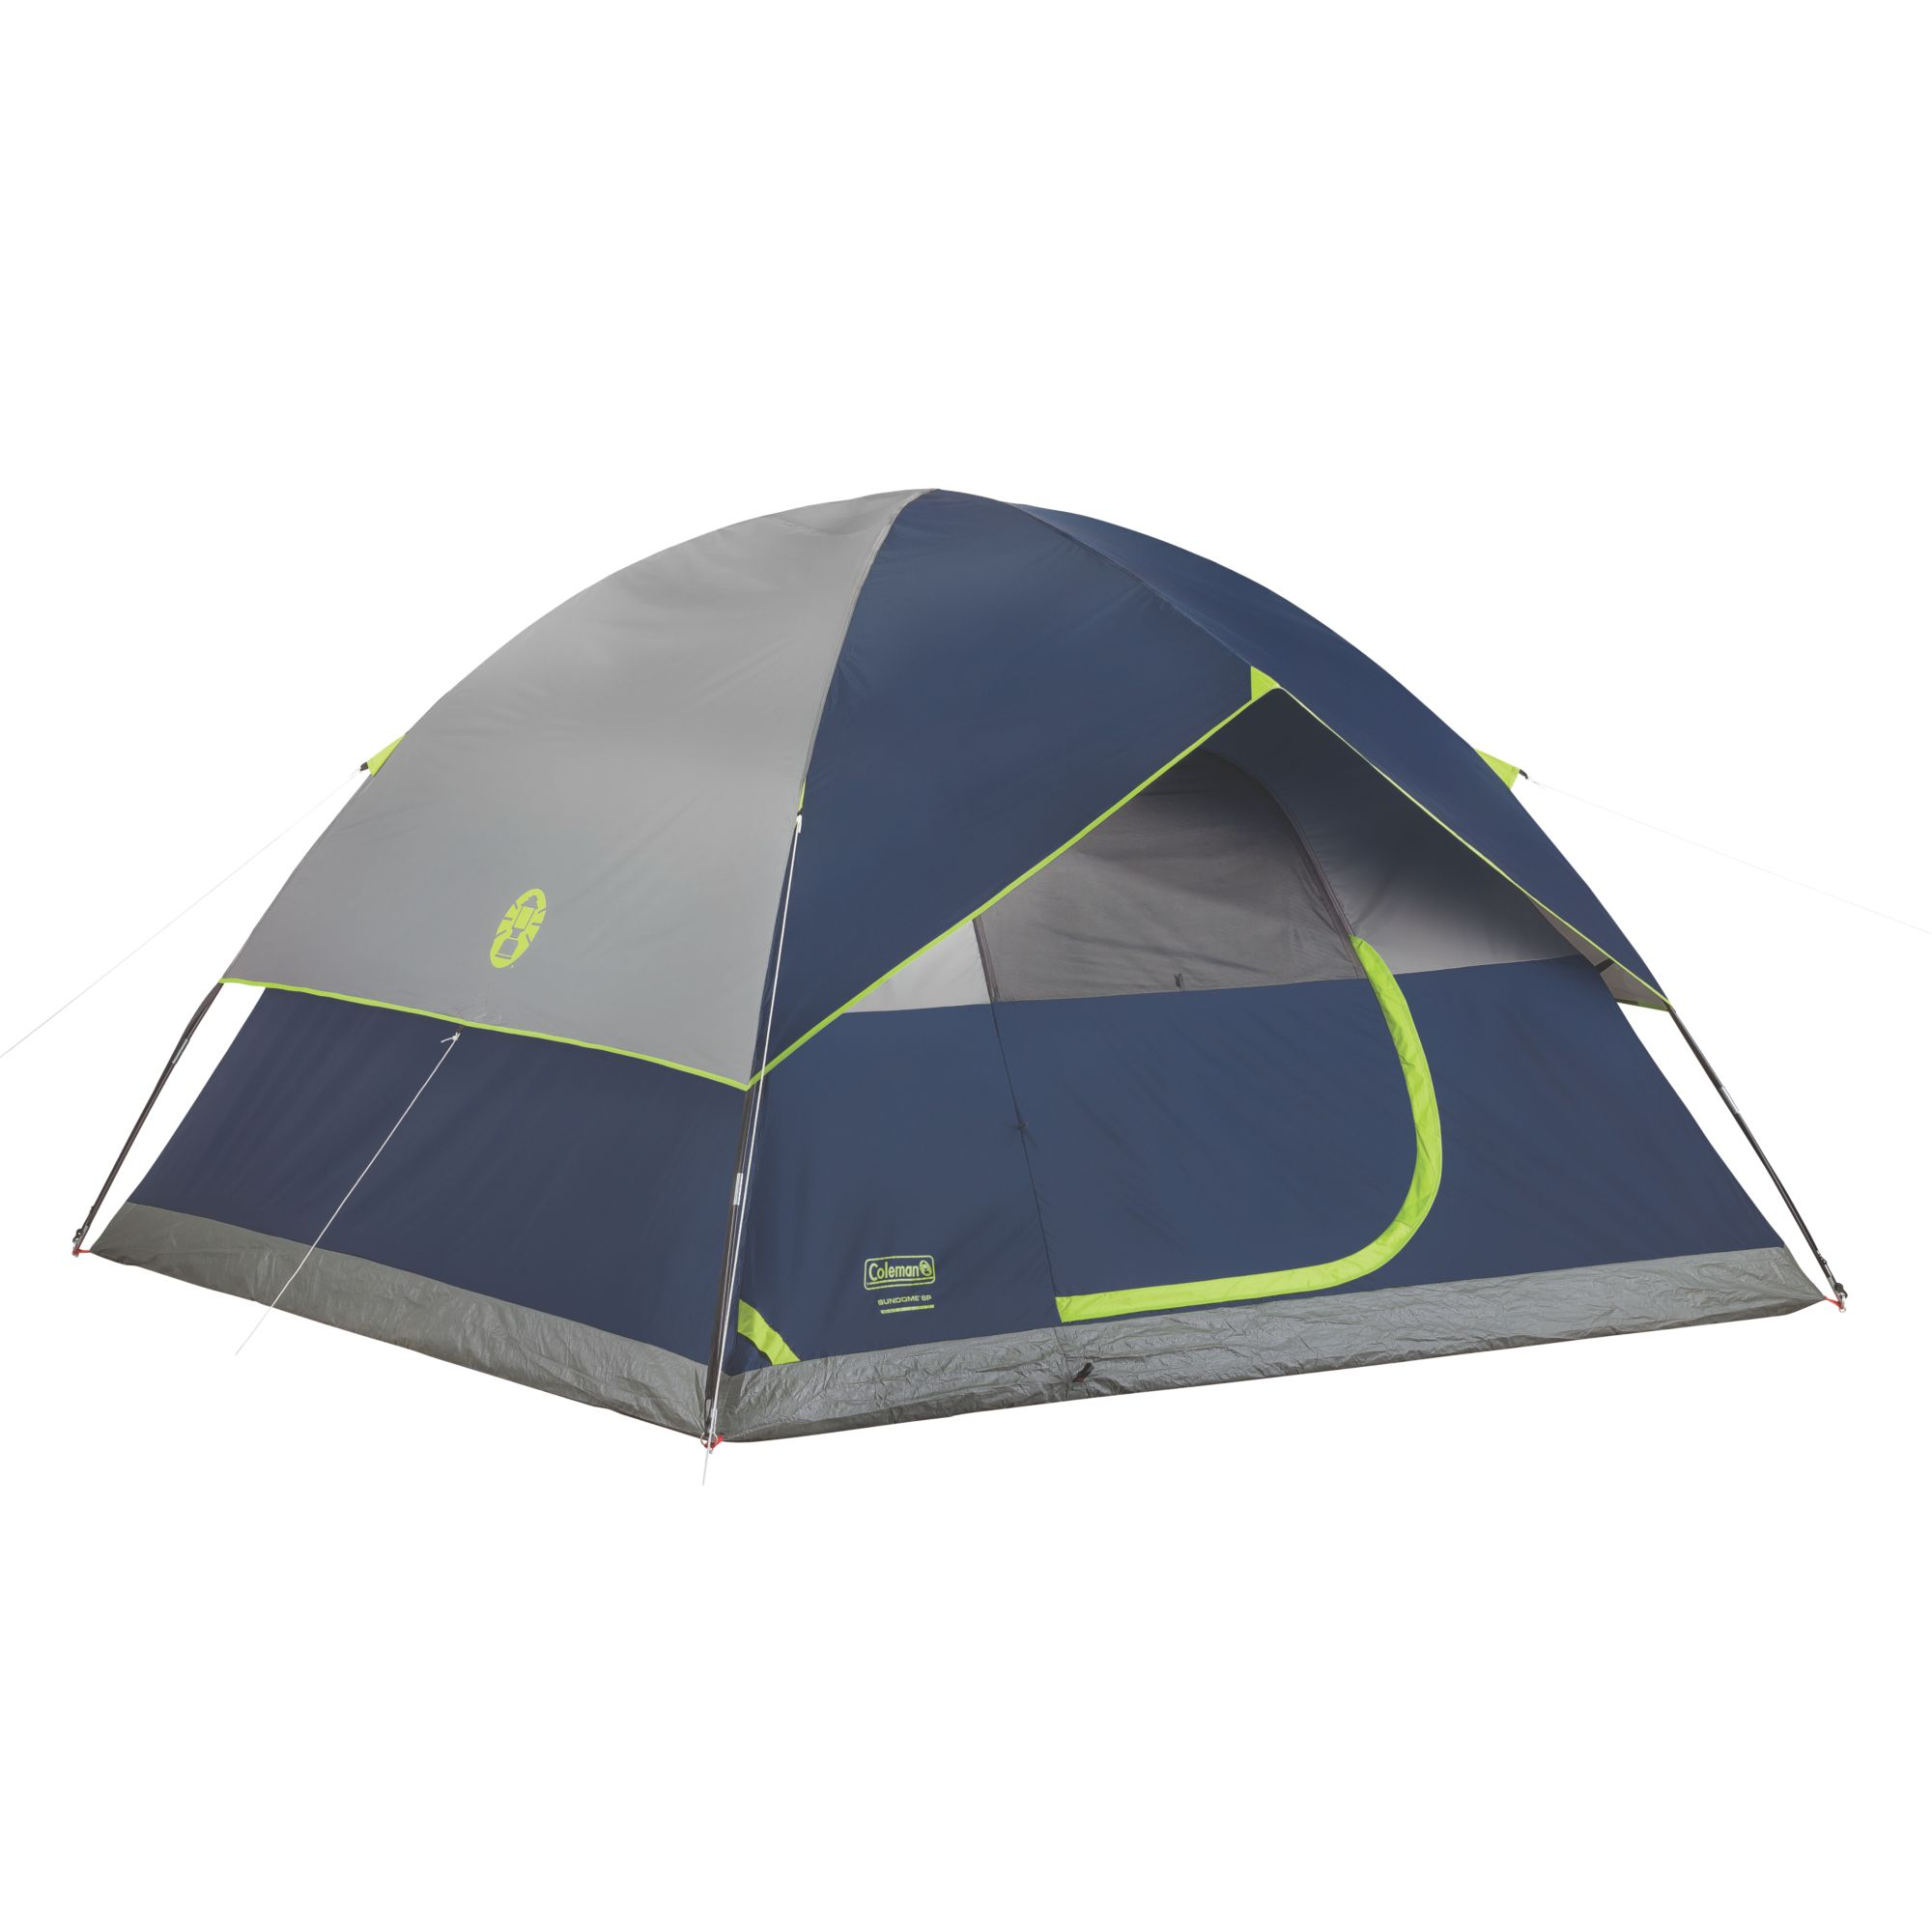 Coleman Sundome 6 Person Tent Review — Outback Review